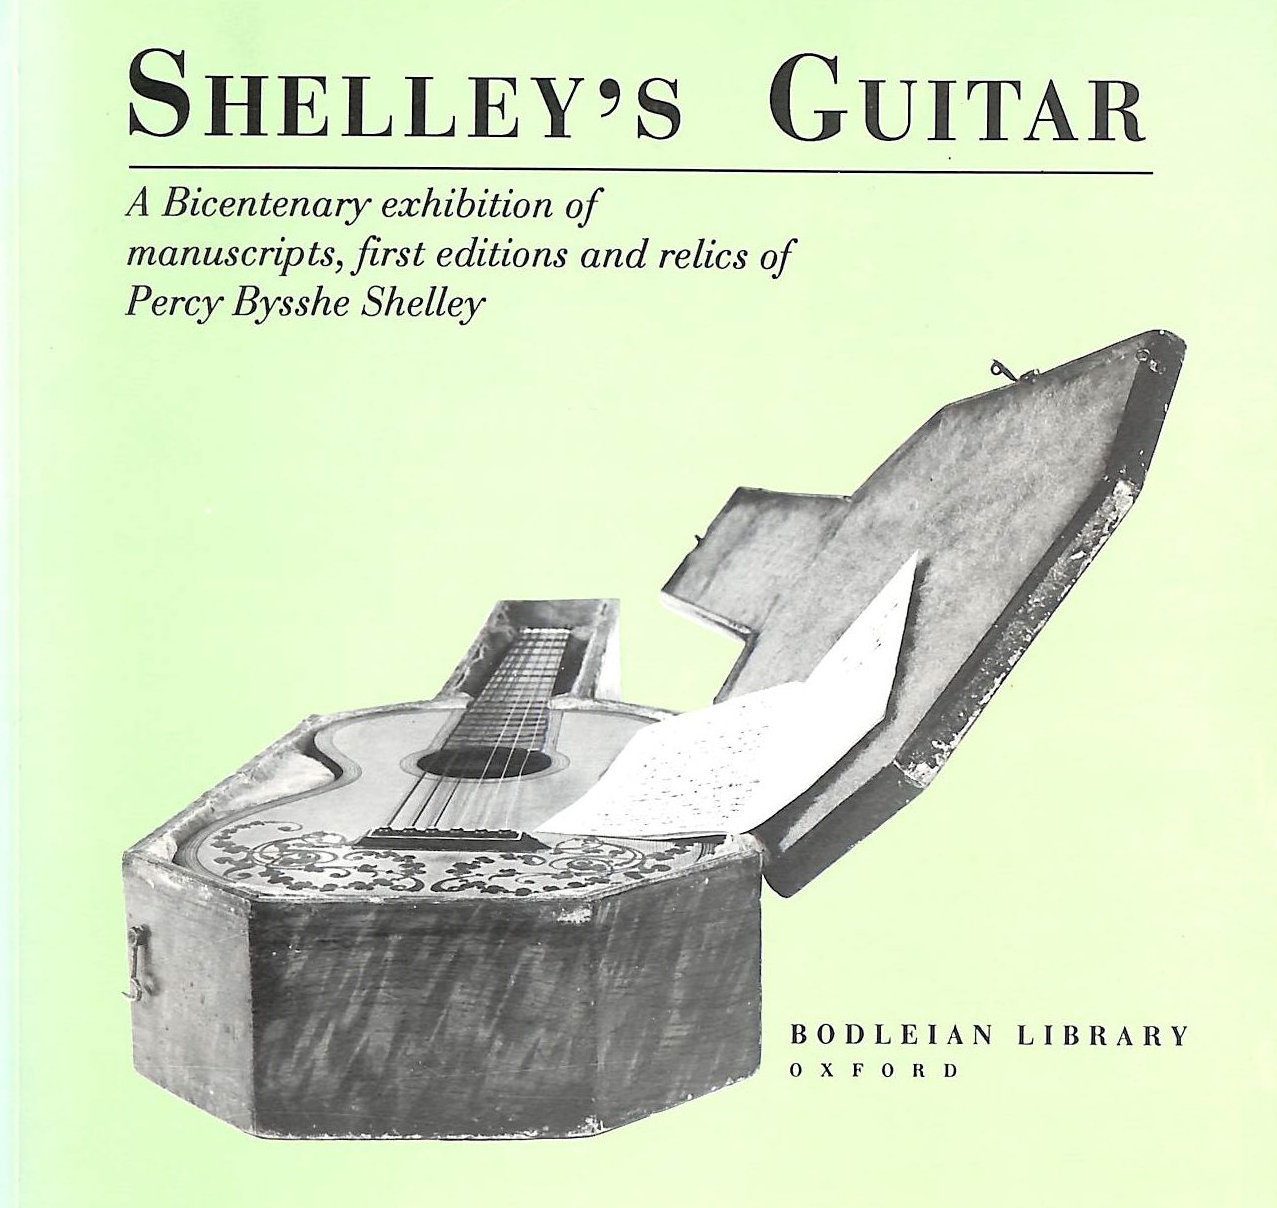 Image for Shelley's Guitar: Bicentenary Exhibition Of Manuscripts, First Editions And Relics Of Percy Bysshe Shelley